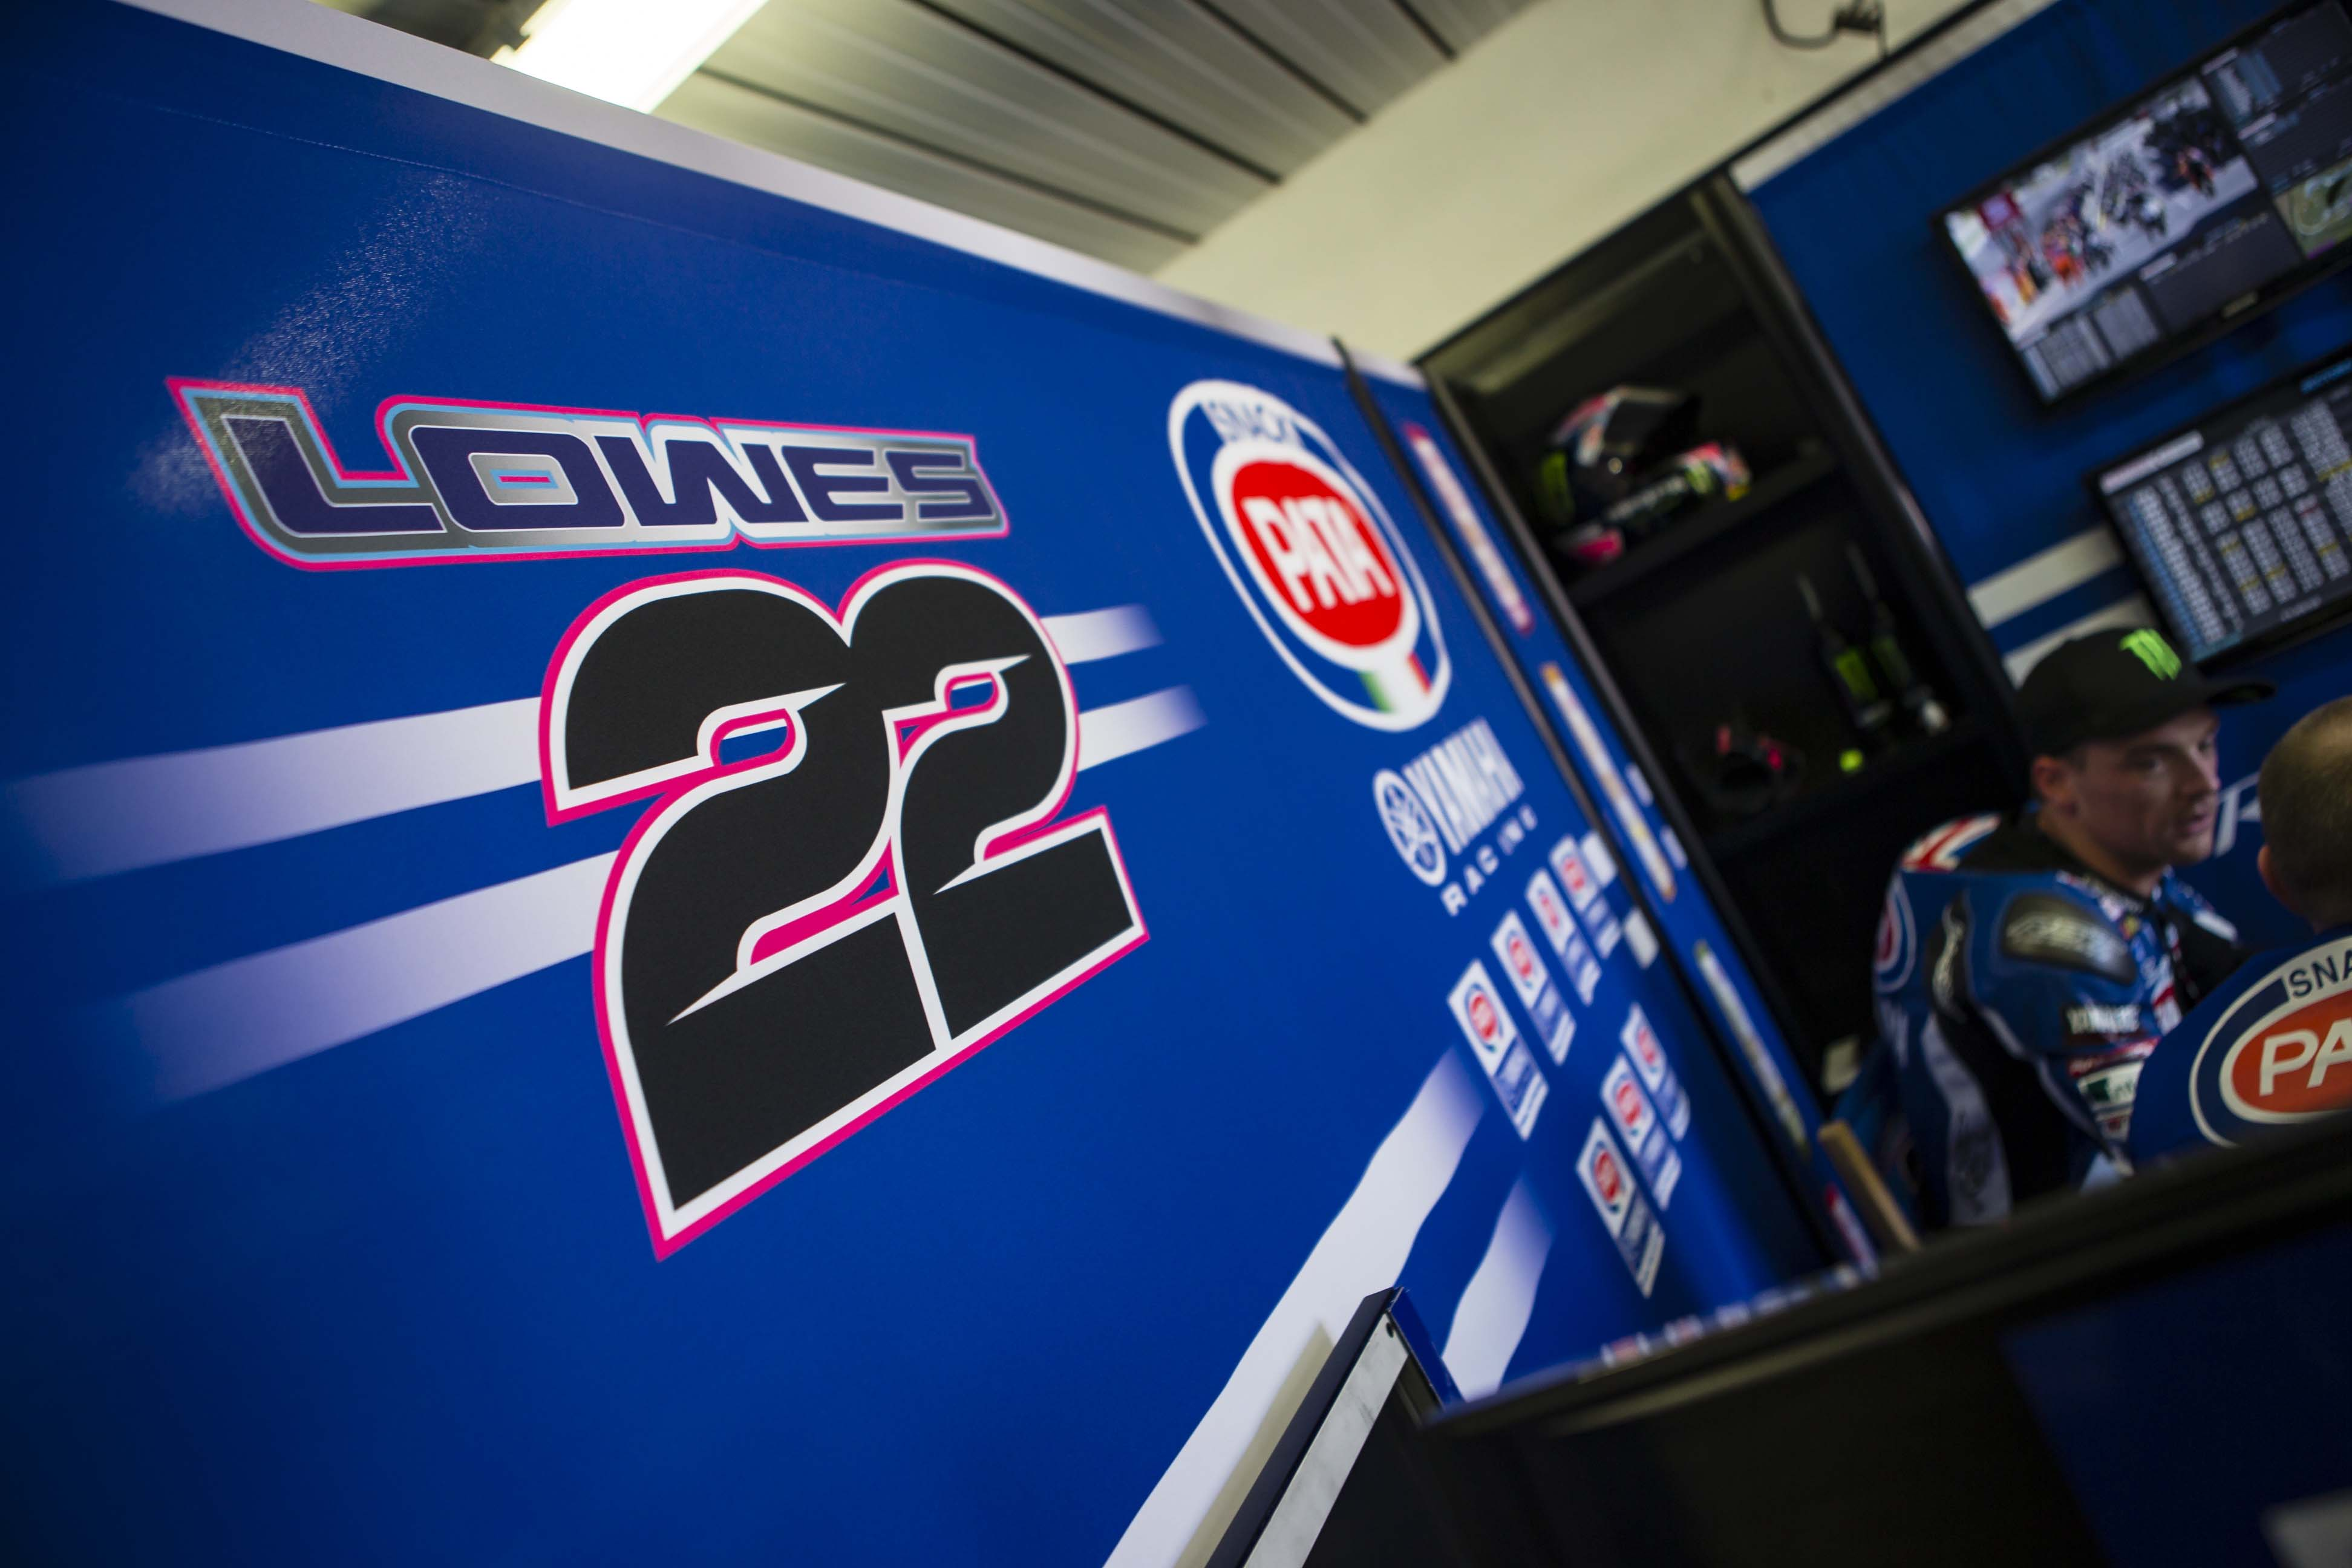 Pata Yamaha Extends Contract with Lowes & Van Der Mark - Asphalt